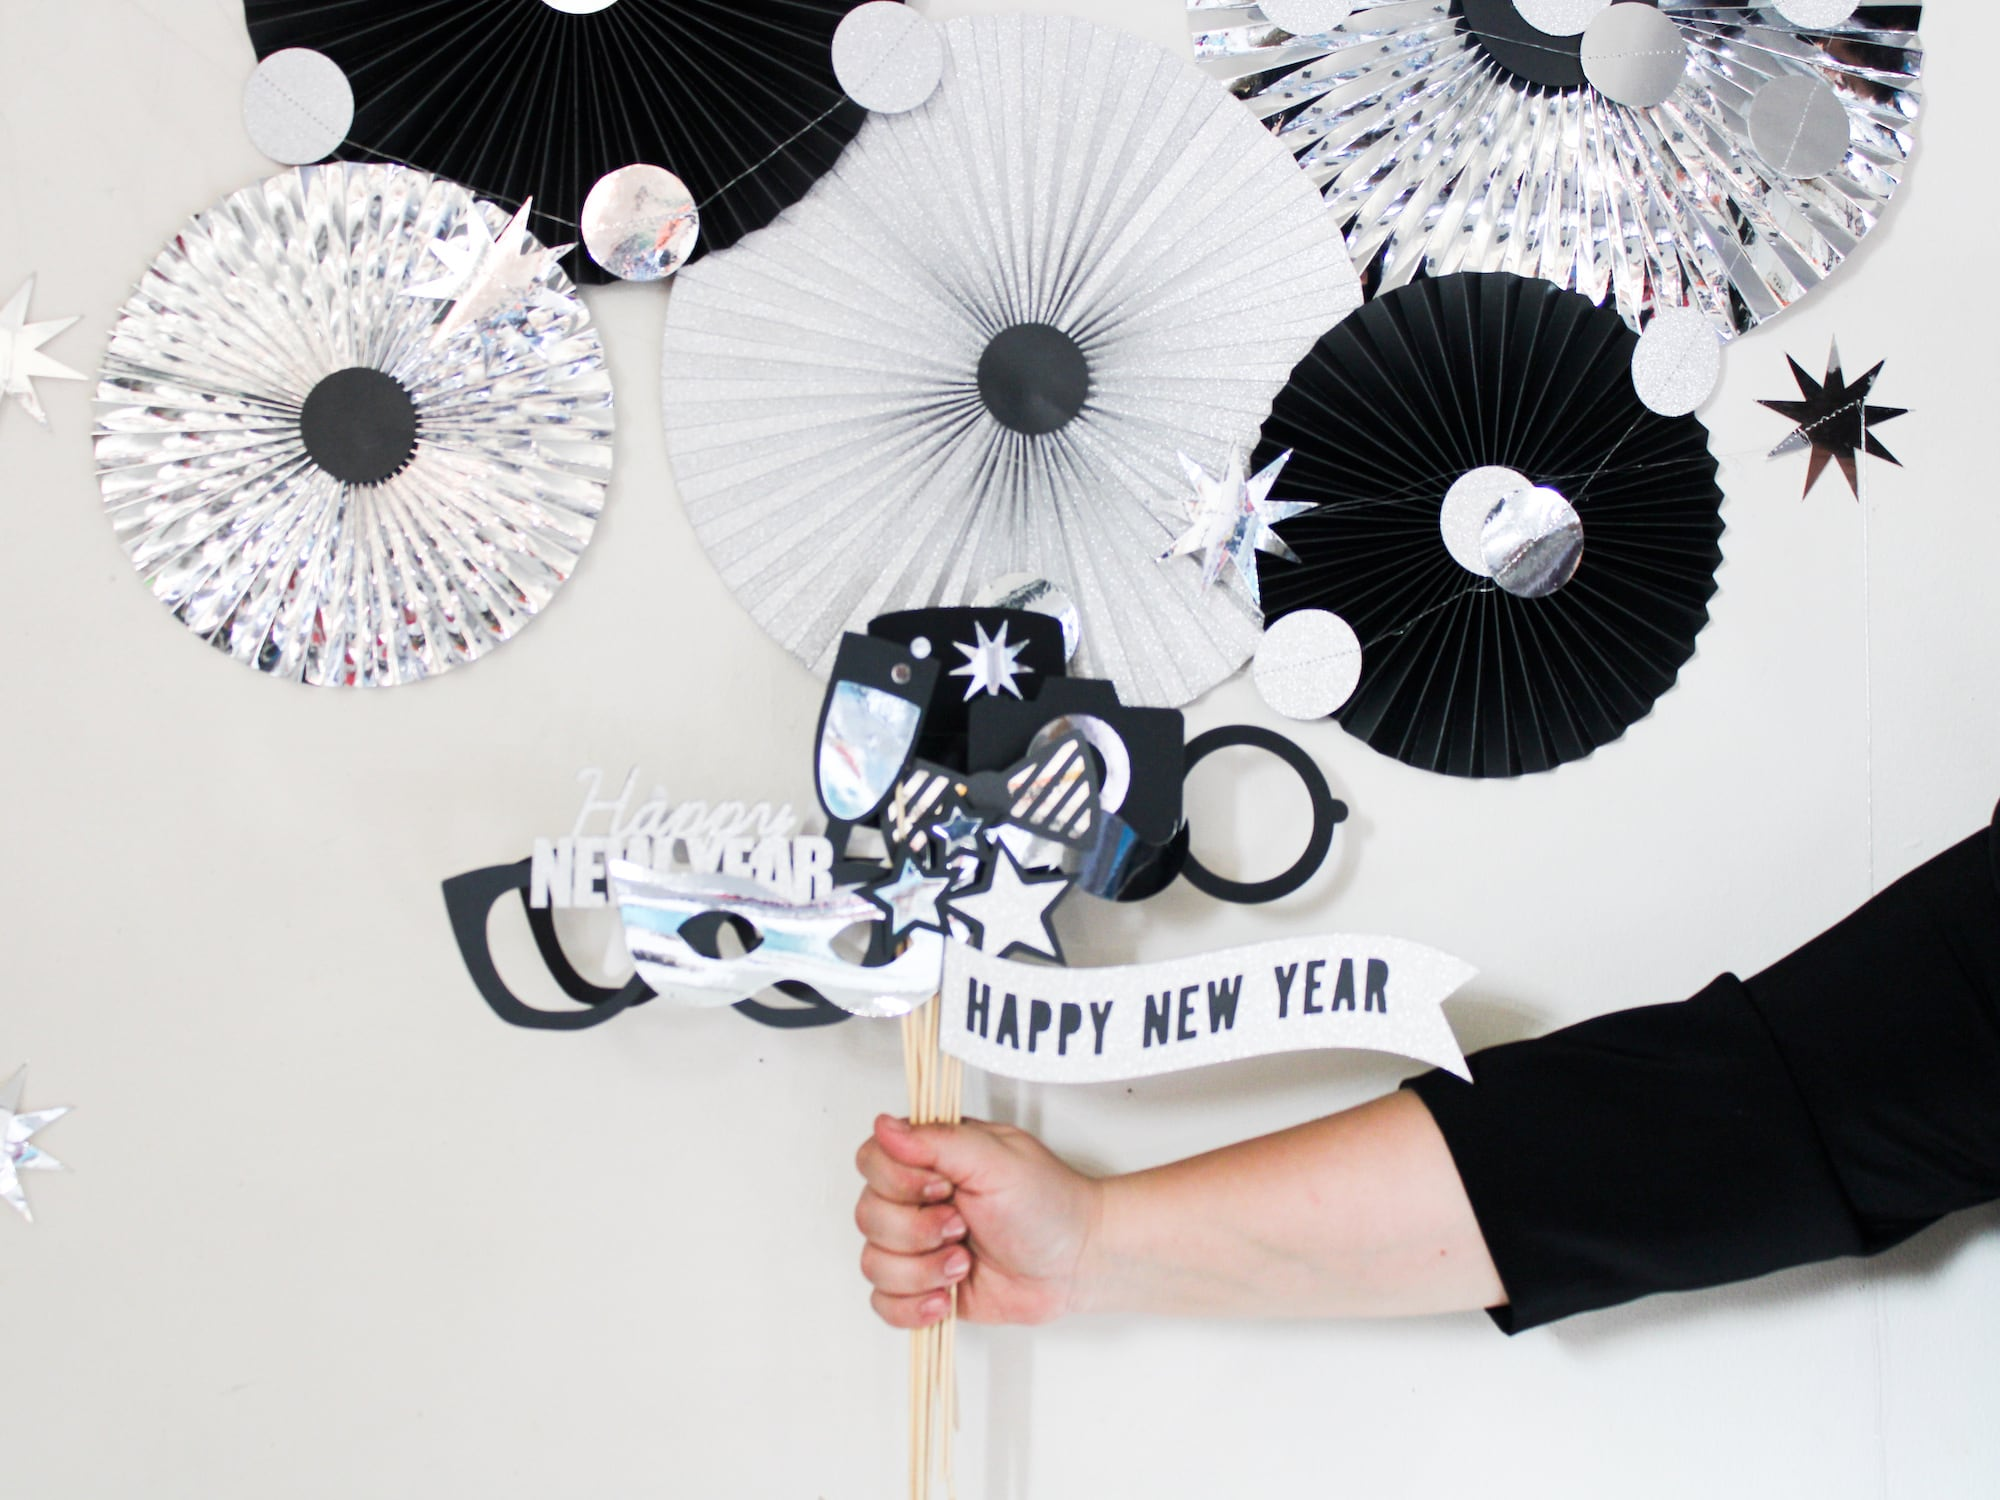 DIY New Year's Eve Photo Booth With Props